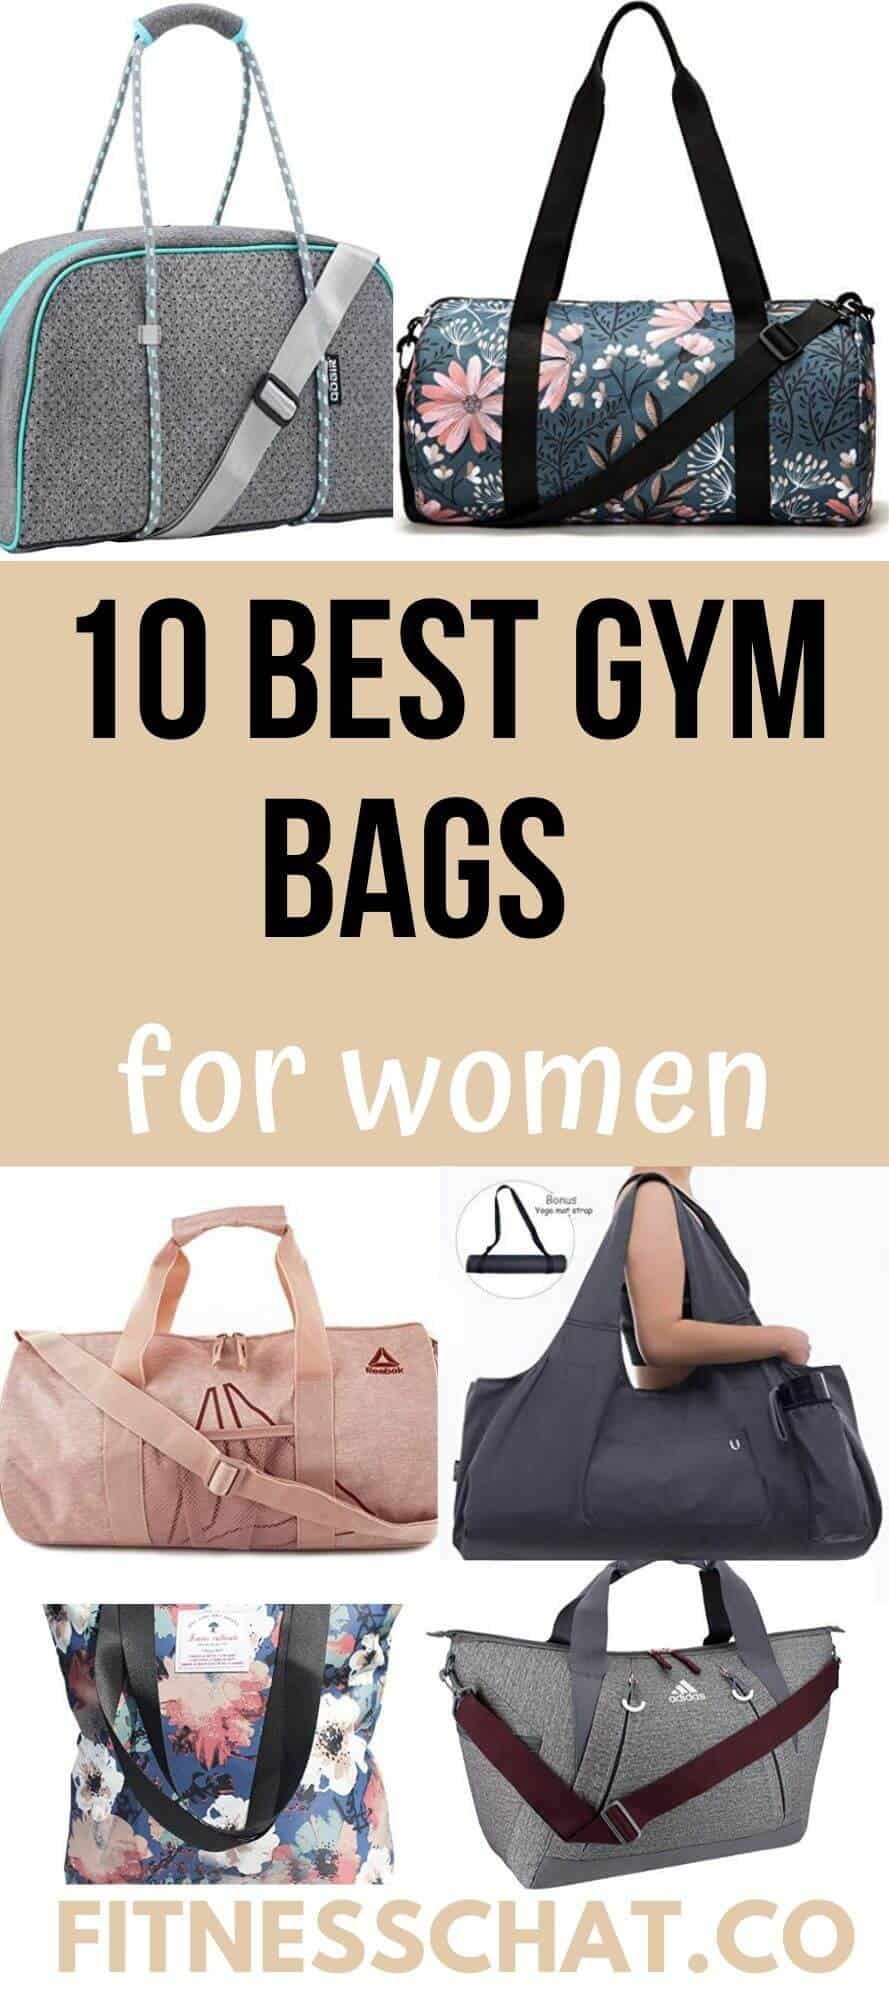 Gym bag essentials women. best gym bags with compartments